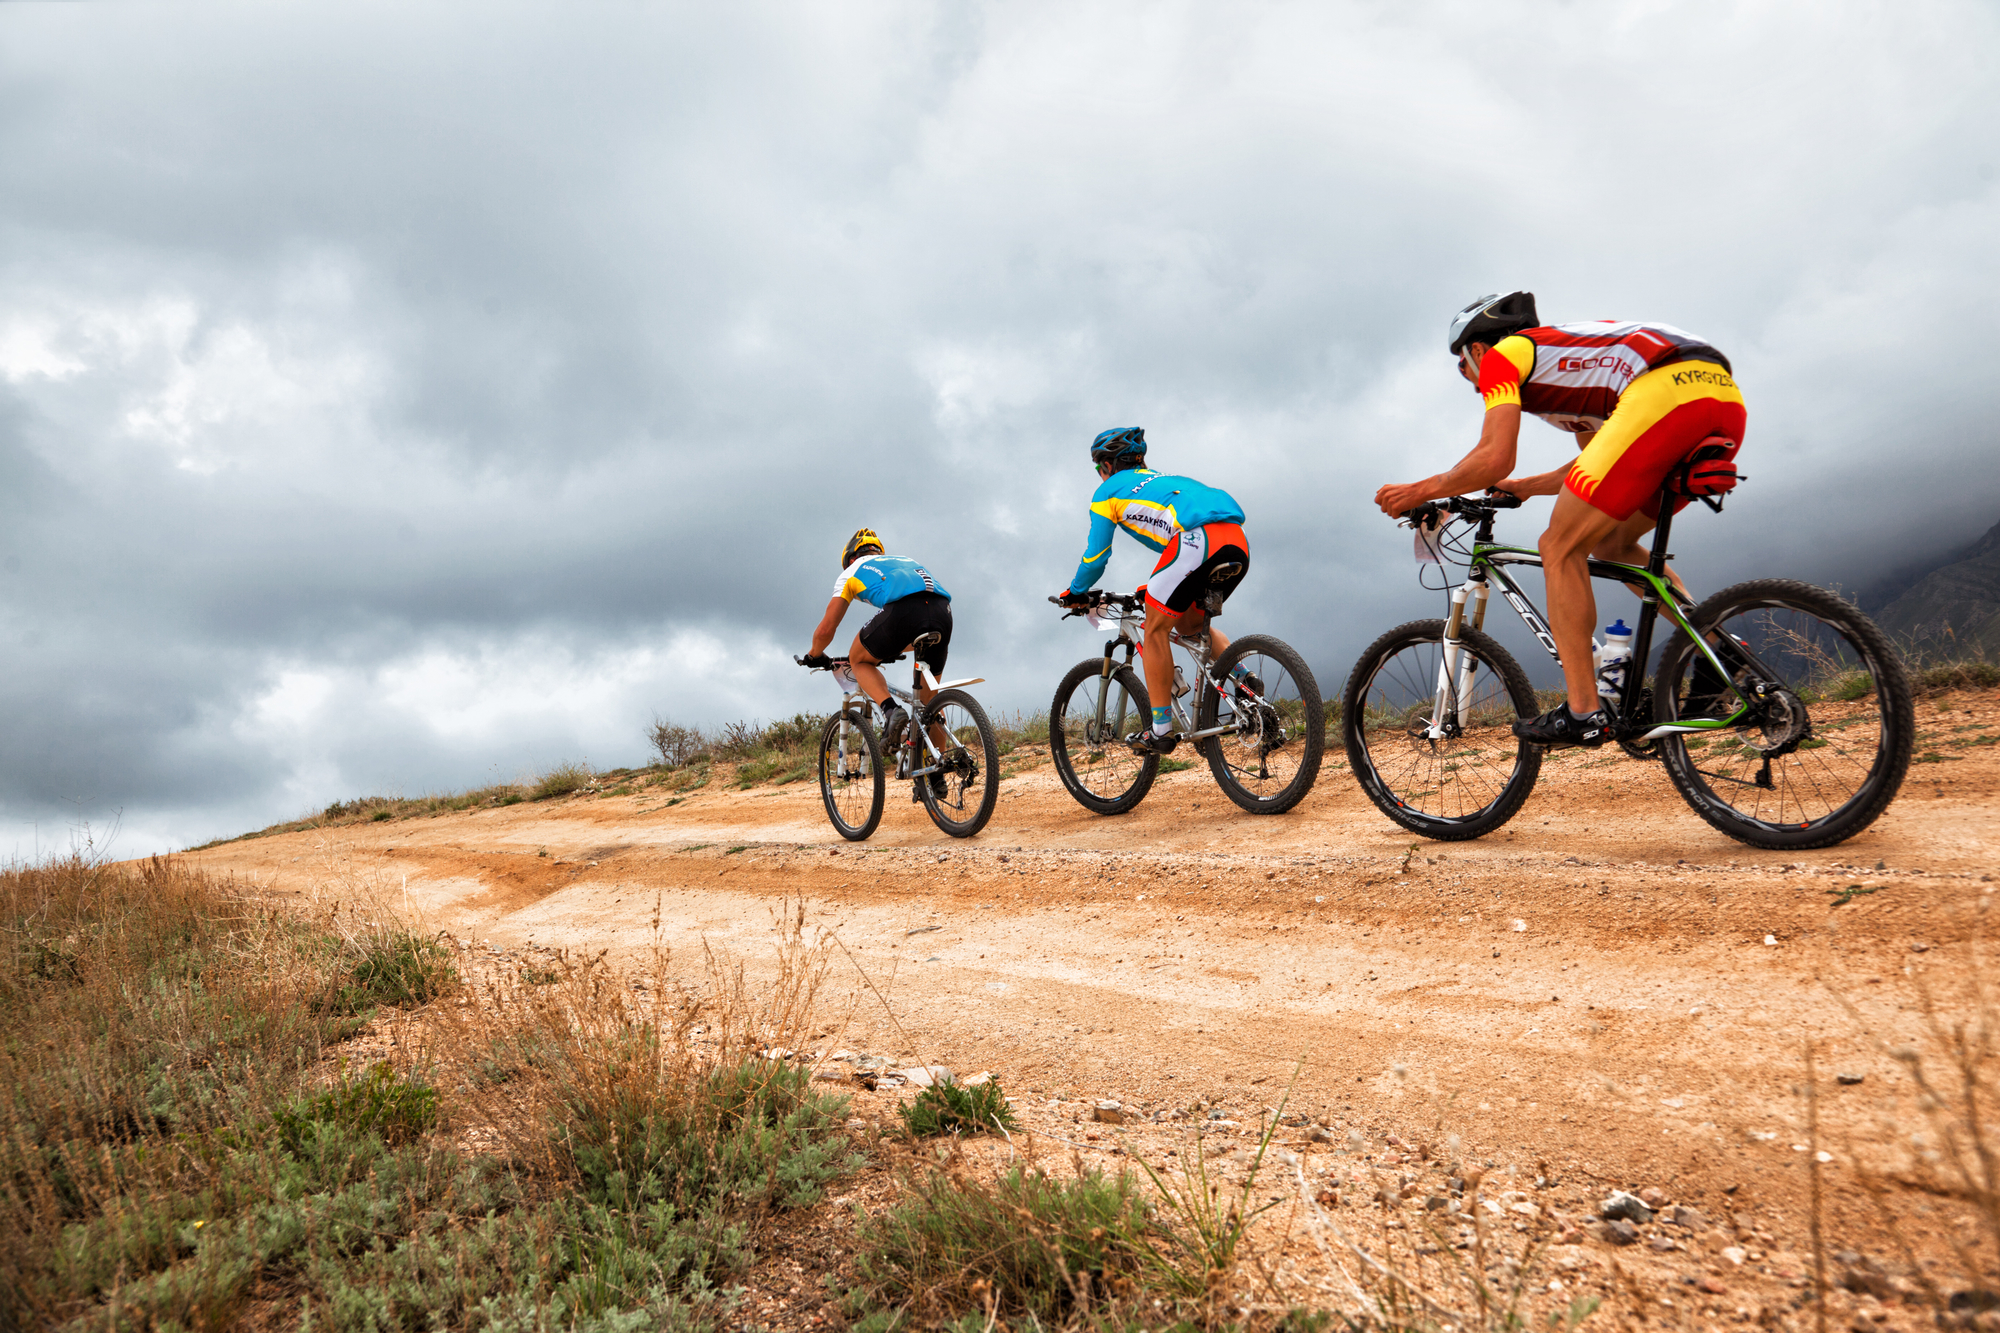 3 cyclists on mountain bikes